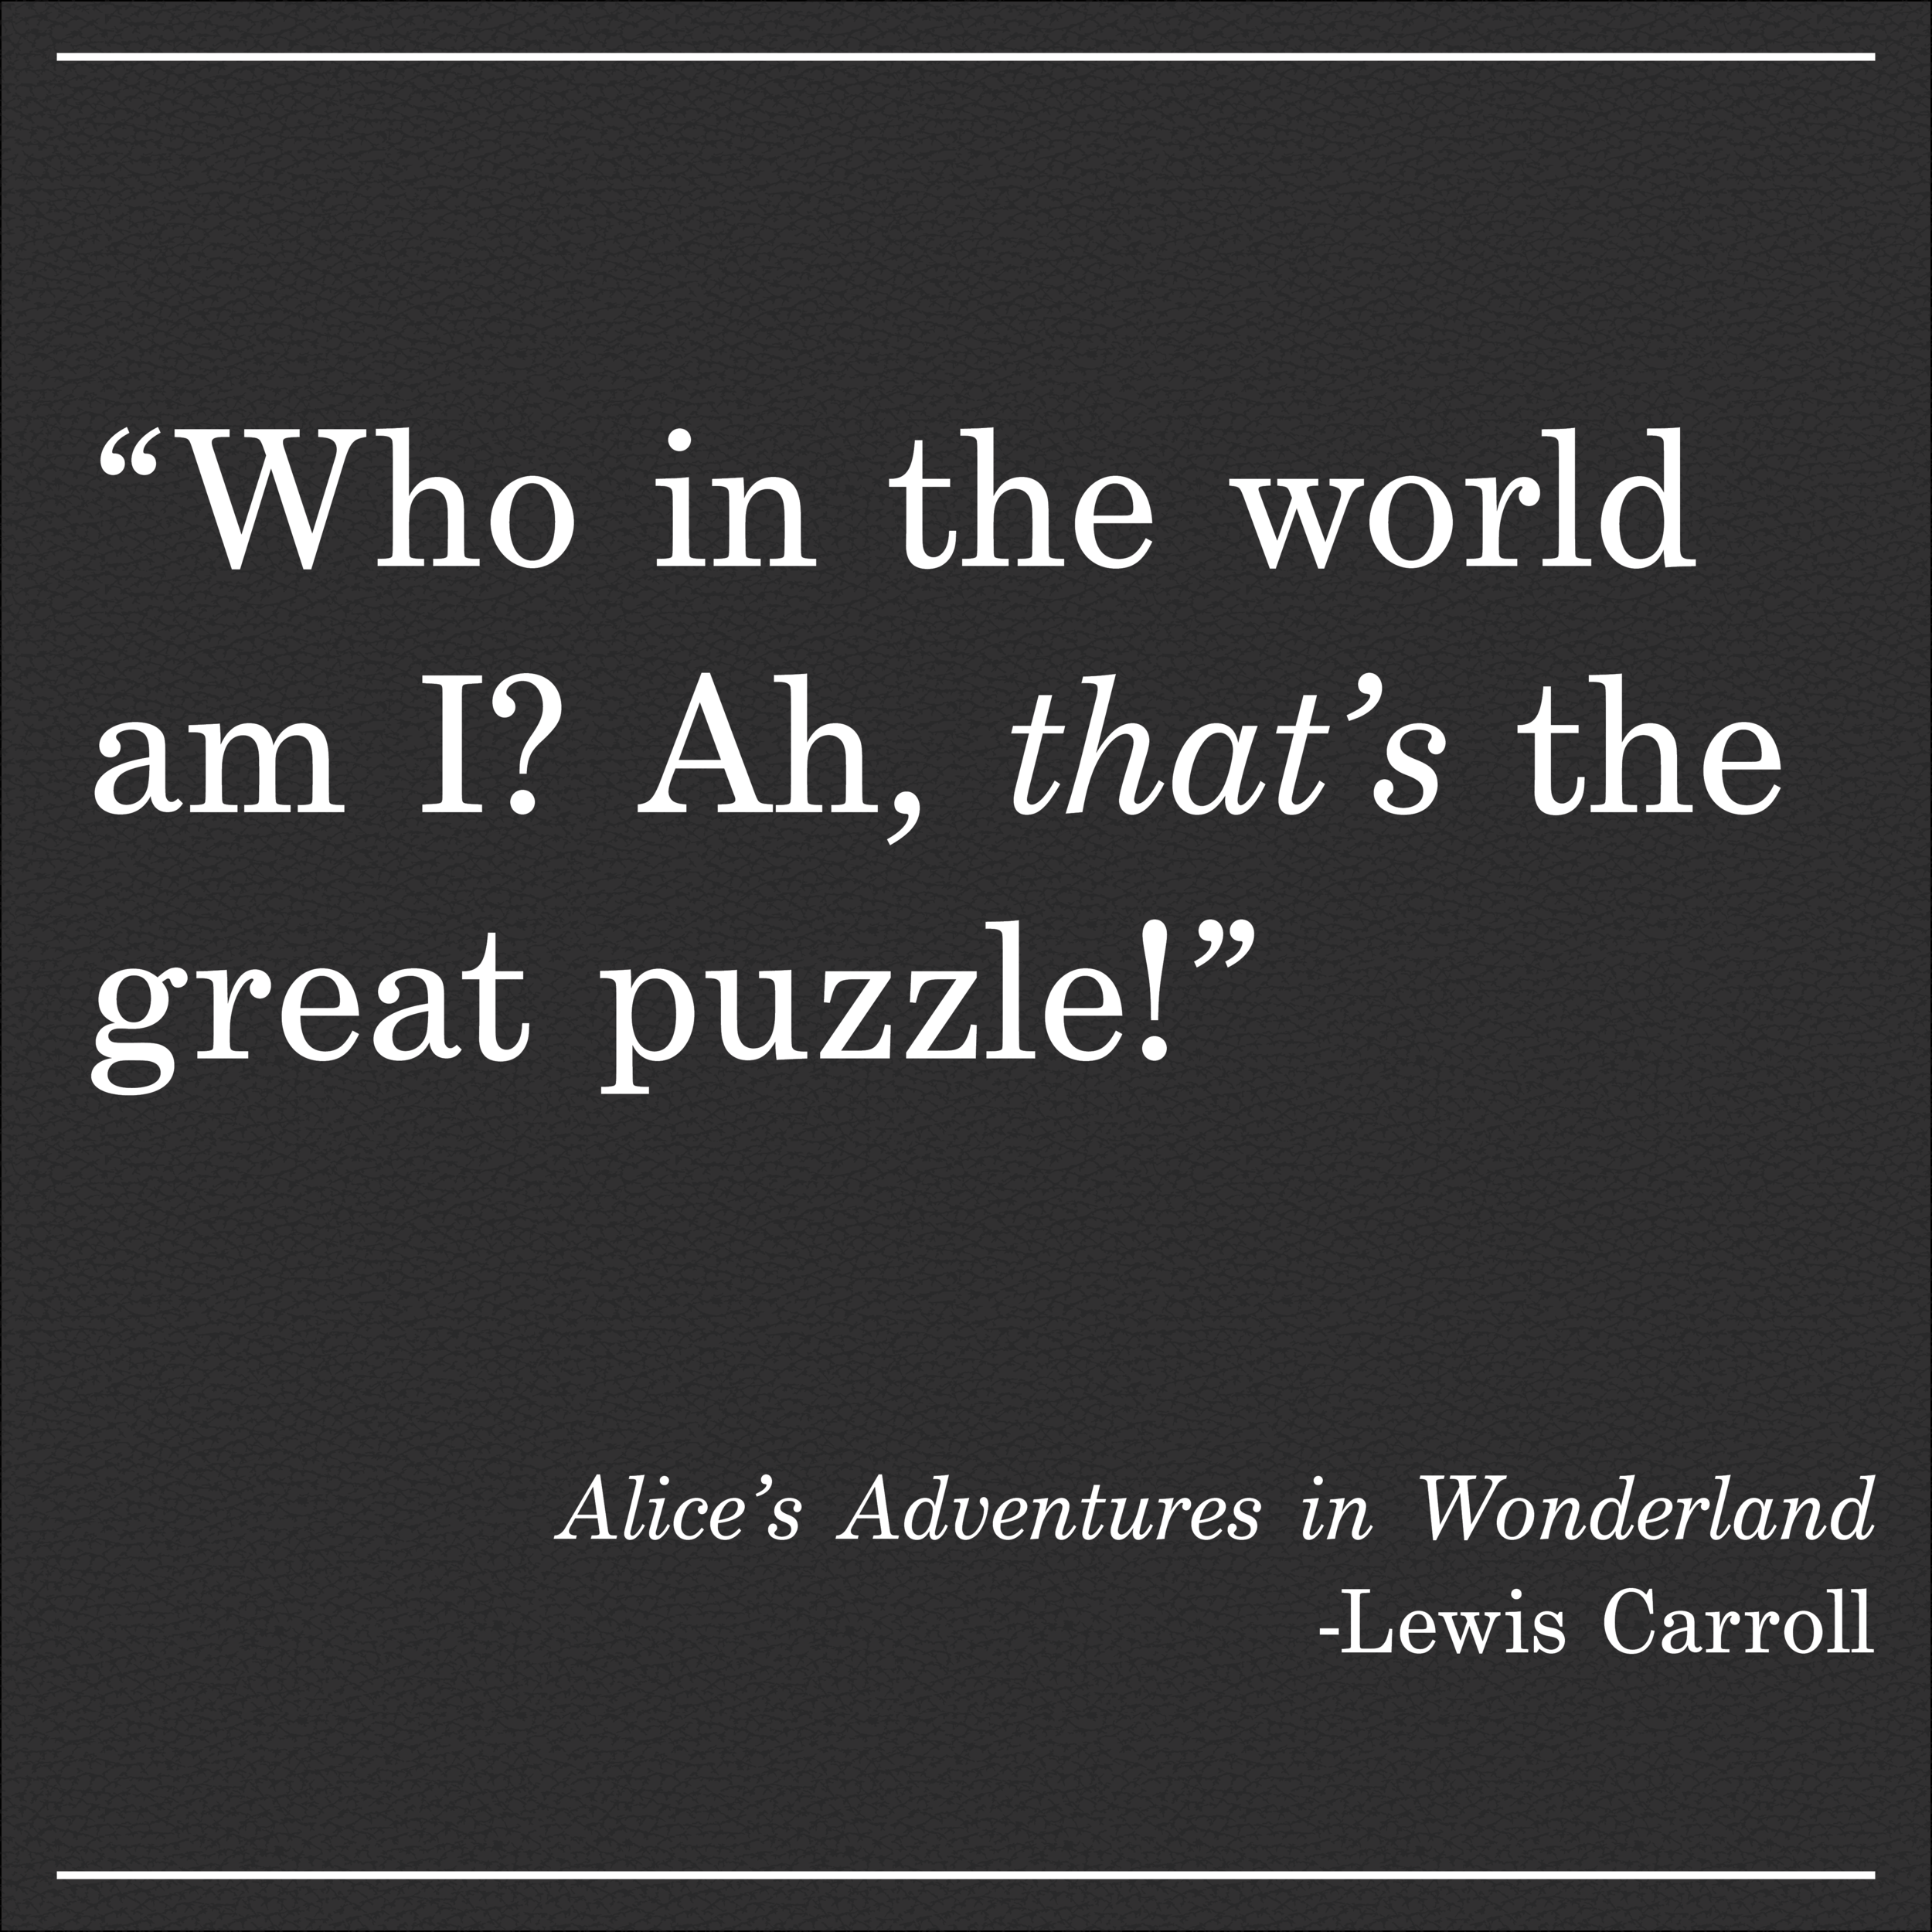 Daily Quote Alice's Adventures in Wonderland by Lewis Carroll